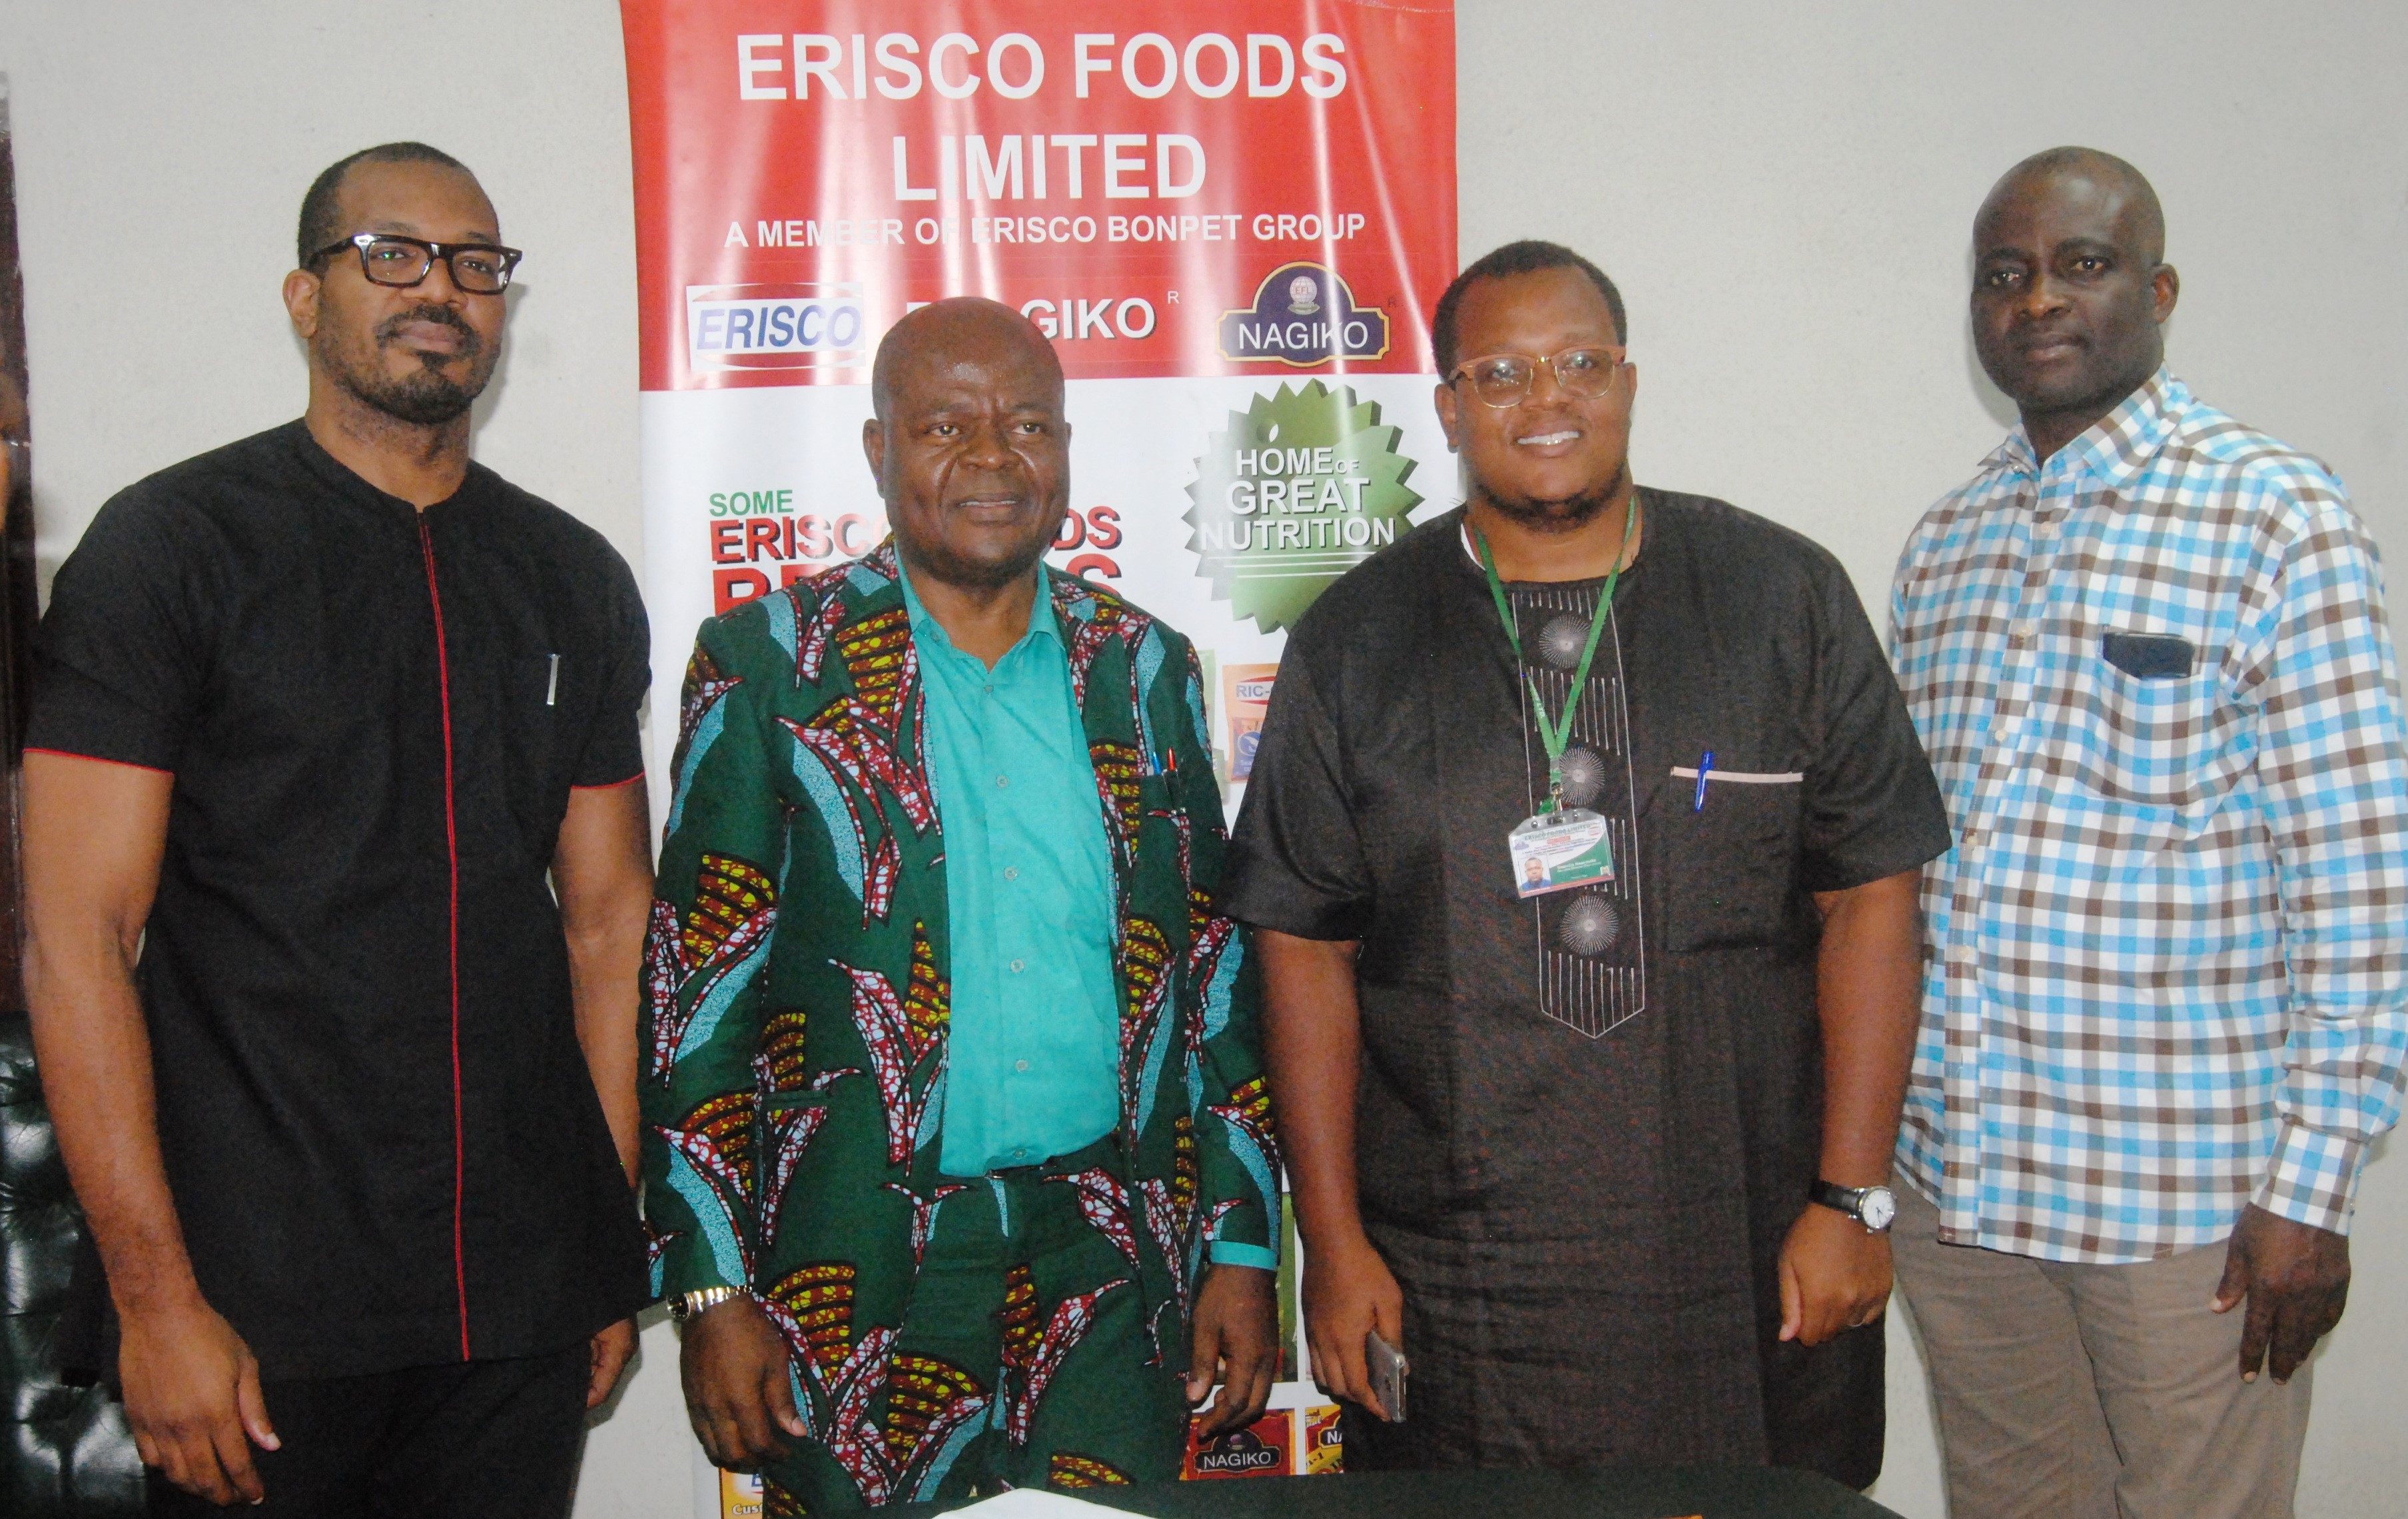 From left: Executive Director, Erisco Foods Limited, Nnamdi Umeofia; President/Chief Executive Officer, Chief Eric Umeofia, Executive Director of the Company, Emeka Umeofia and the General Manager/Administration Manager, Tokunbo Agbede, during the company press conference on the state of the nation, held at the company premises at Alausa, Ikeja in Lagos. October 4, 2017.